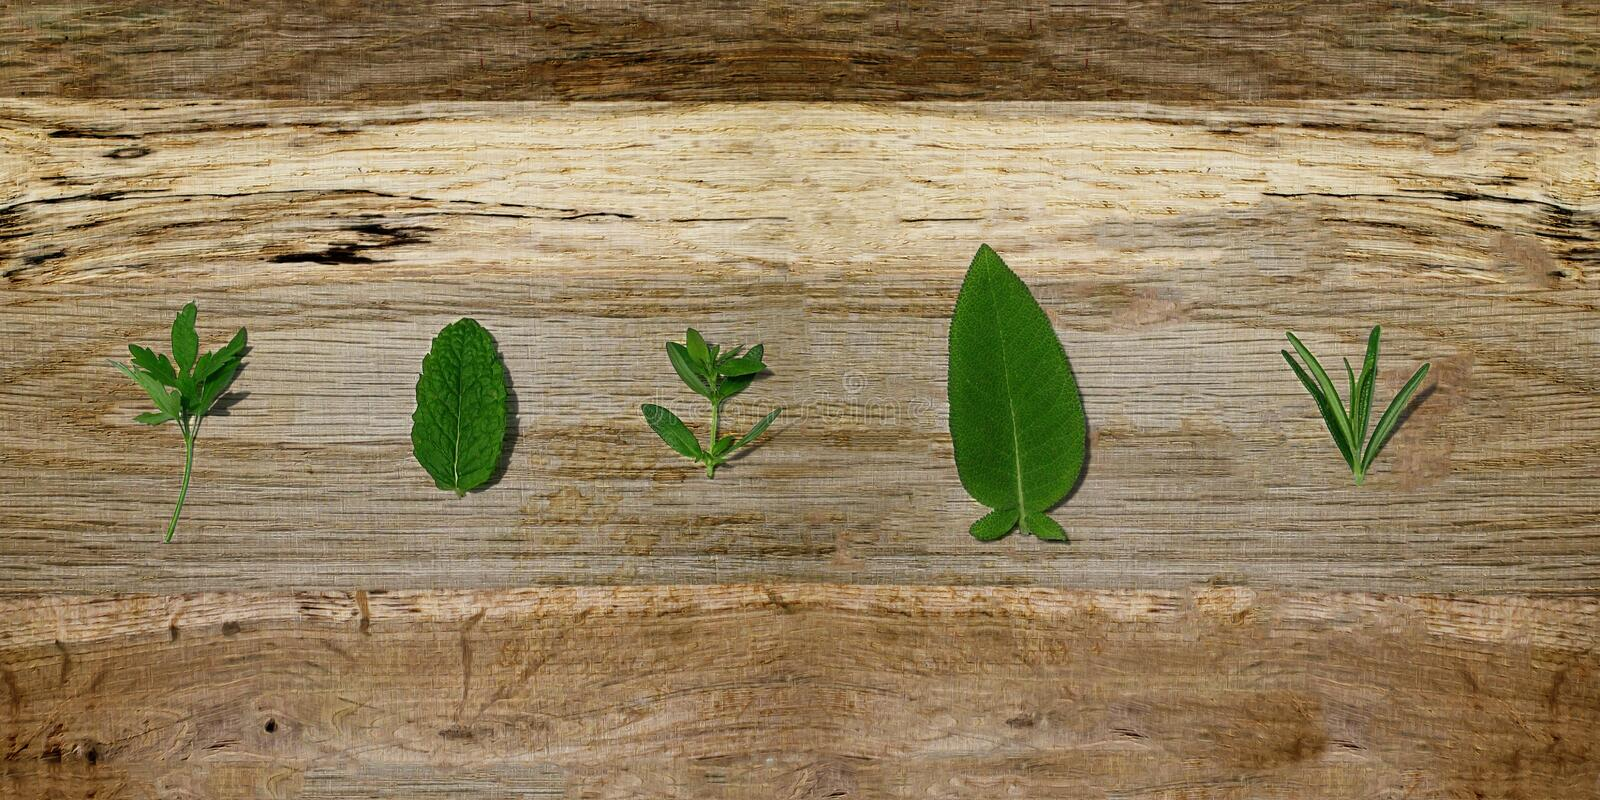 Fresh aromatic spices - fresch herbs on wood. Parsley-mint-thyme-sage-rosemary. Leaves of fresh herbs or aromatic spices: parsley, mint, thyme, sage, rosemary stock images